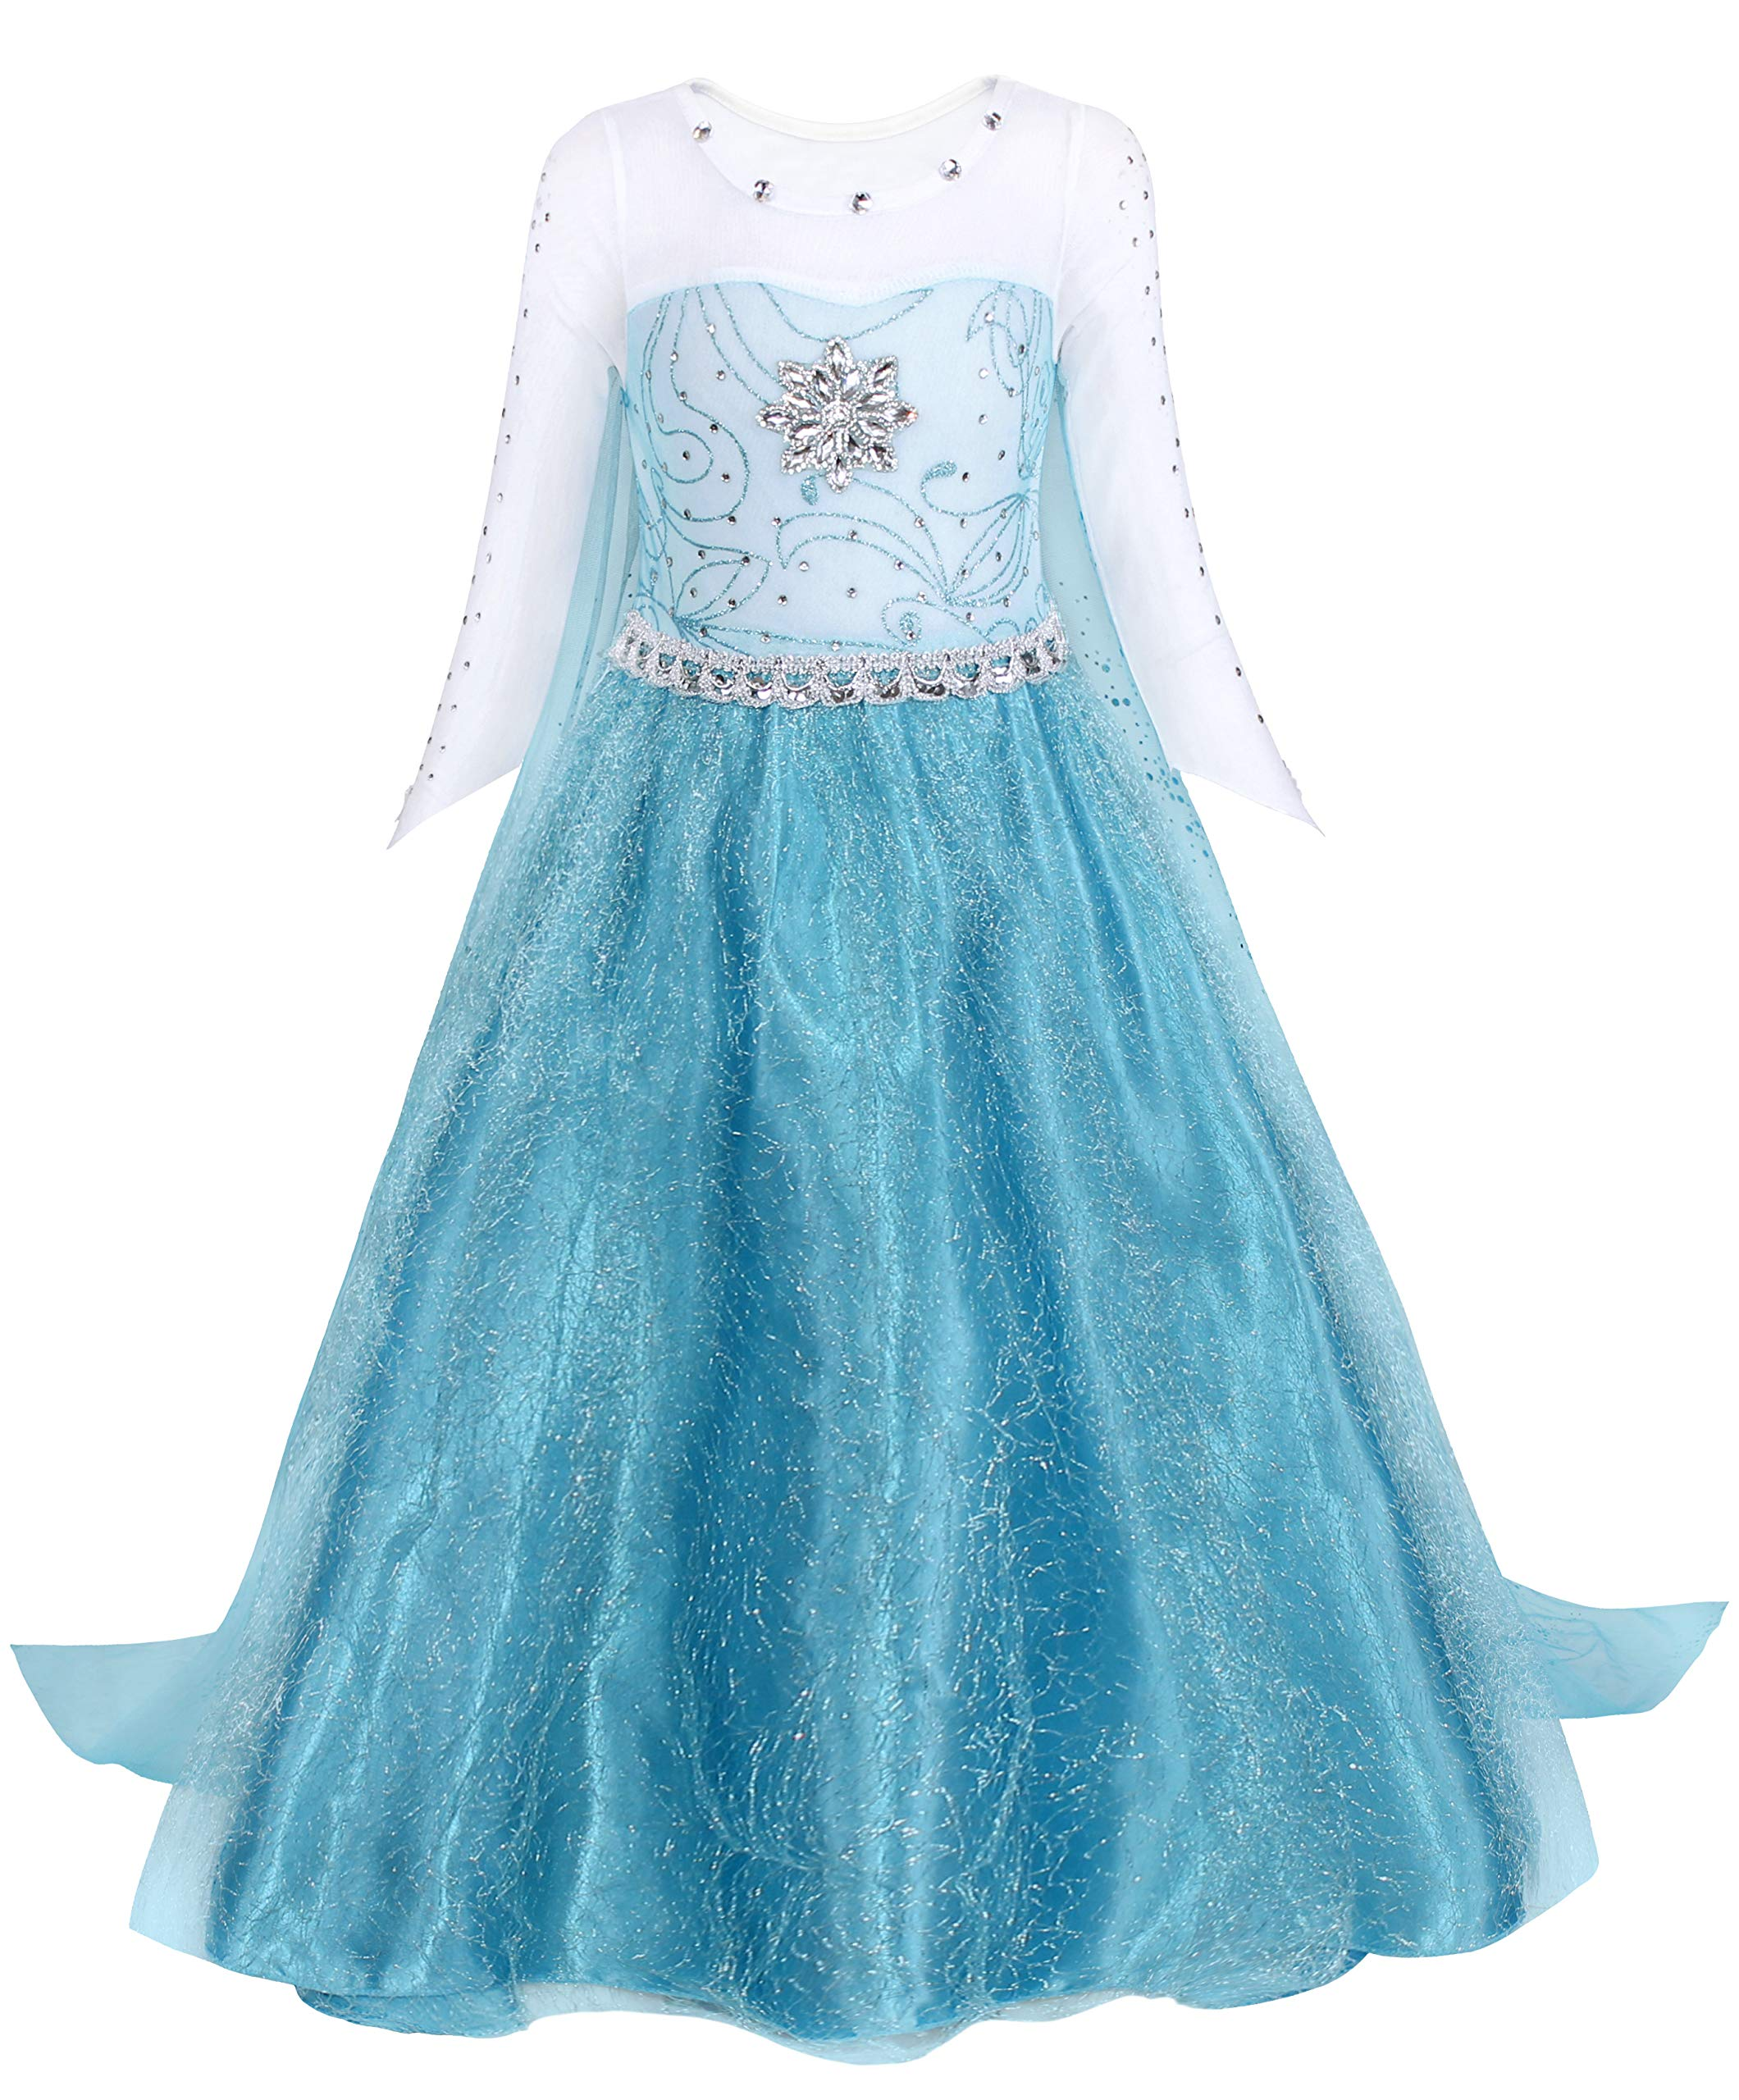 AmzBarley Princess Costumes Girls Dress for Toddler Children Birthday Party Halloween Christmas Cosplay Outfits Adventure Clothes Long Sleeves 2-10 Y